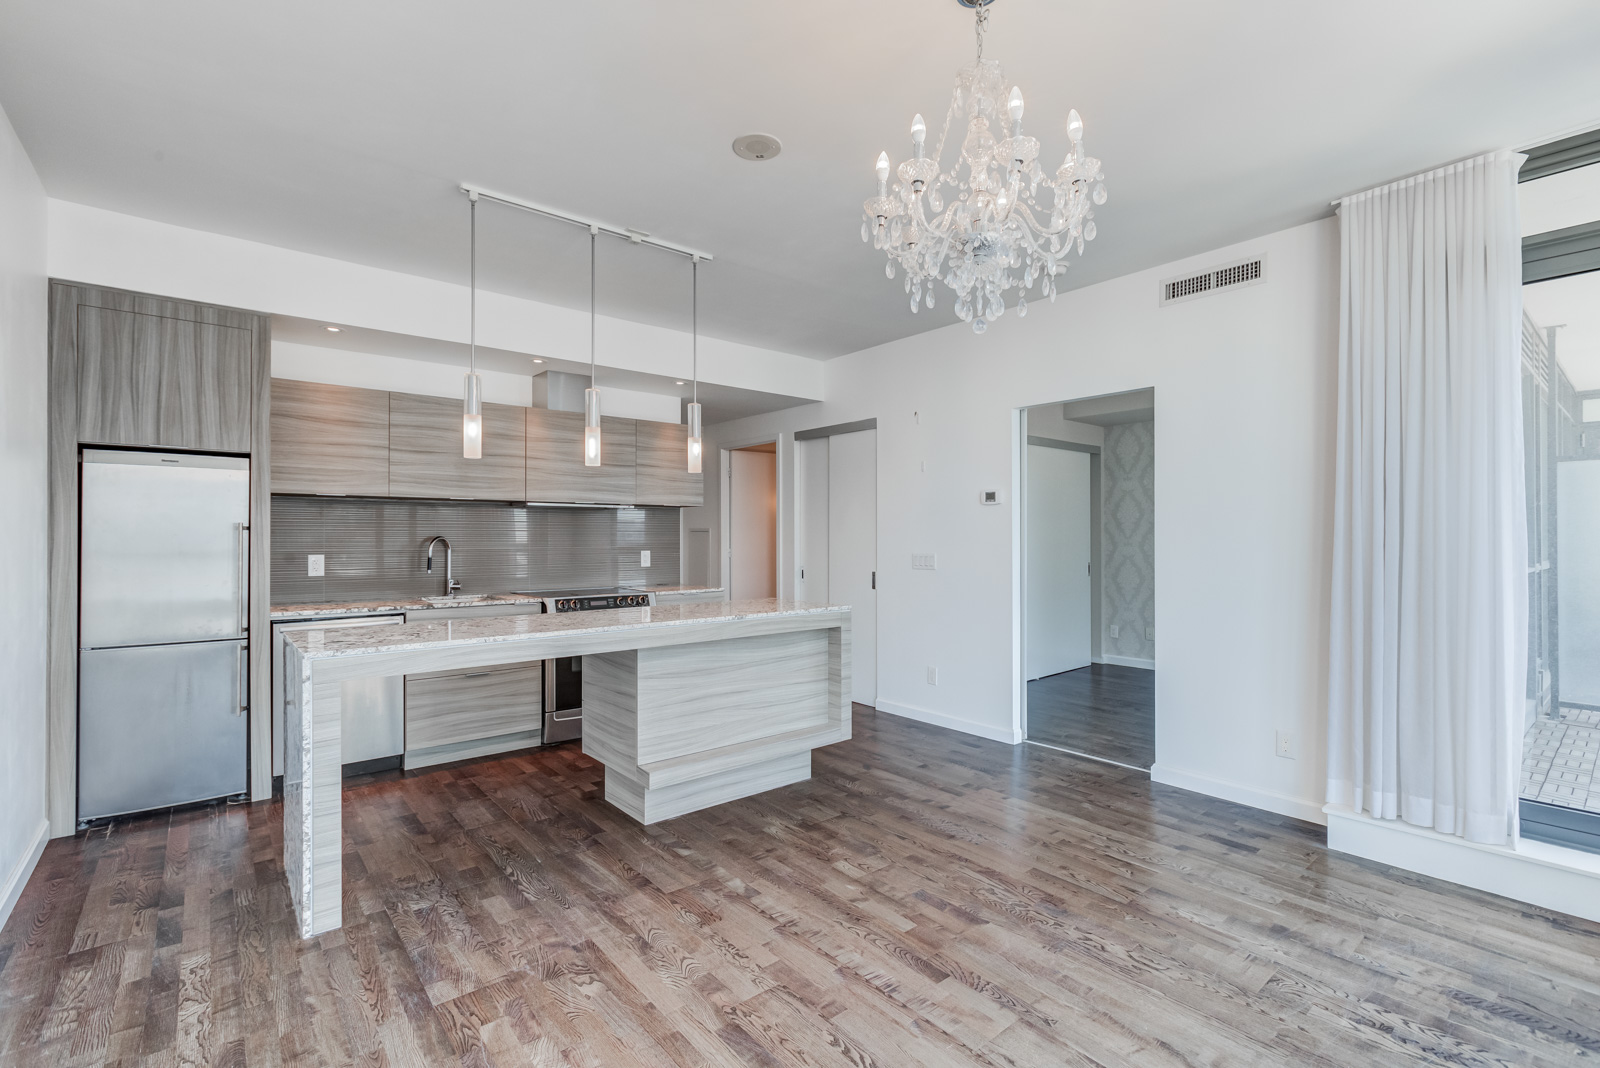 Open-concept living room, dining room and kitchen with chandelier, kitchen island, and wooden laminate floors.